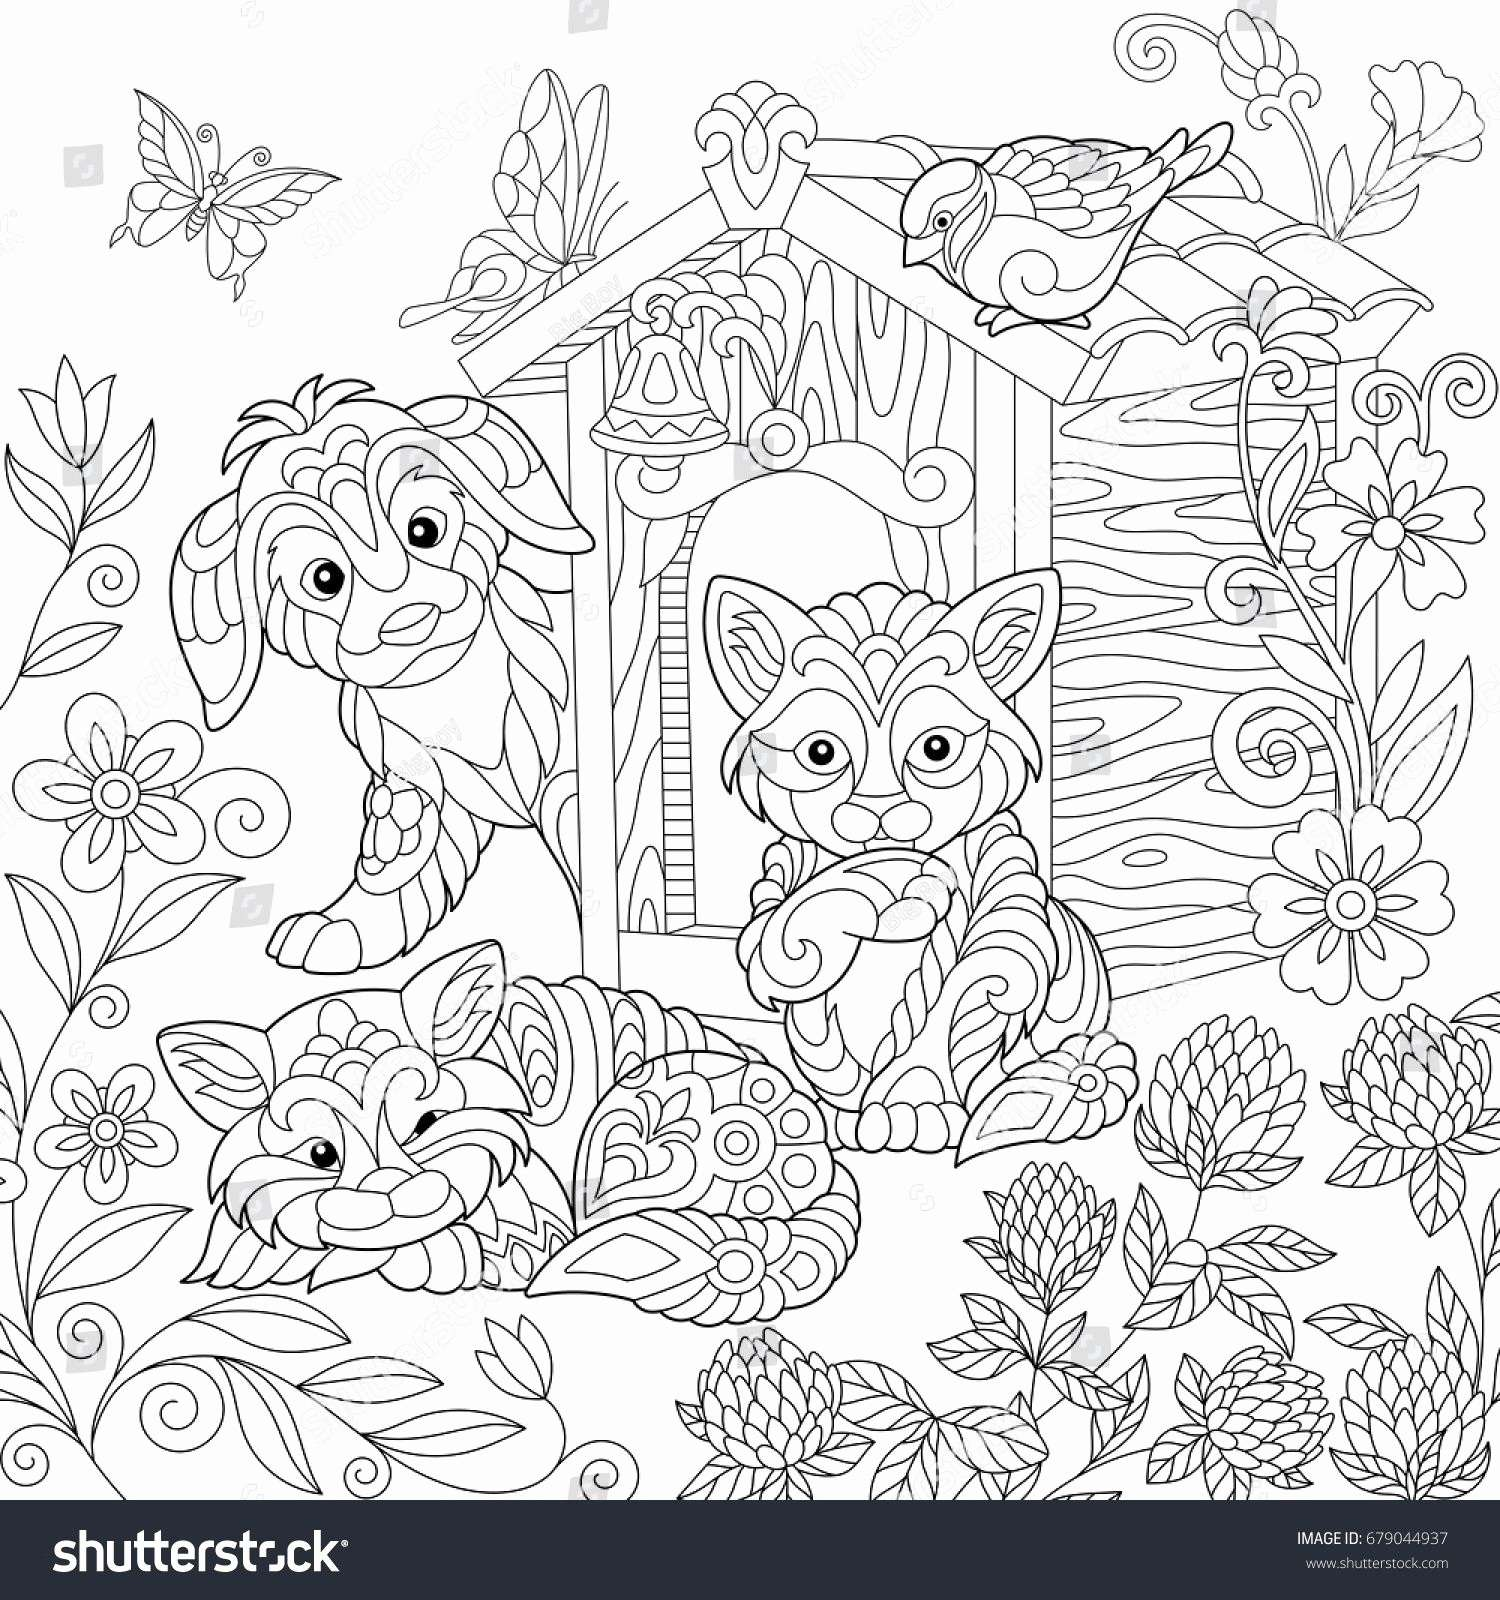 Christmas Coloring In Online With Pages